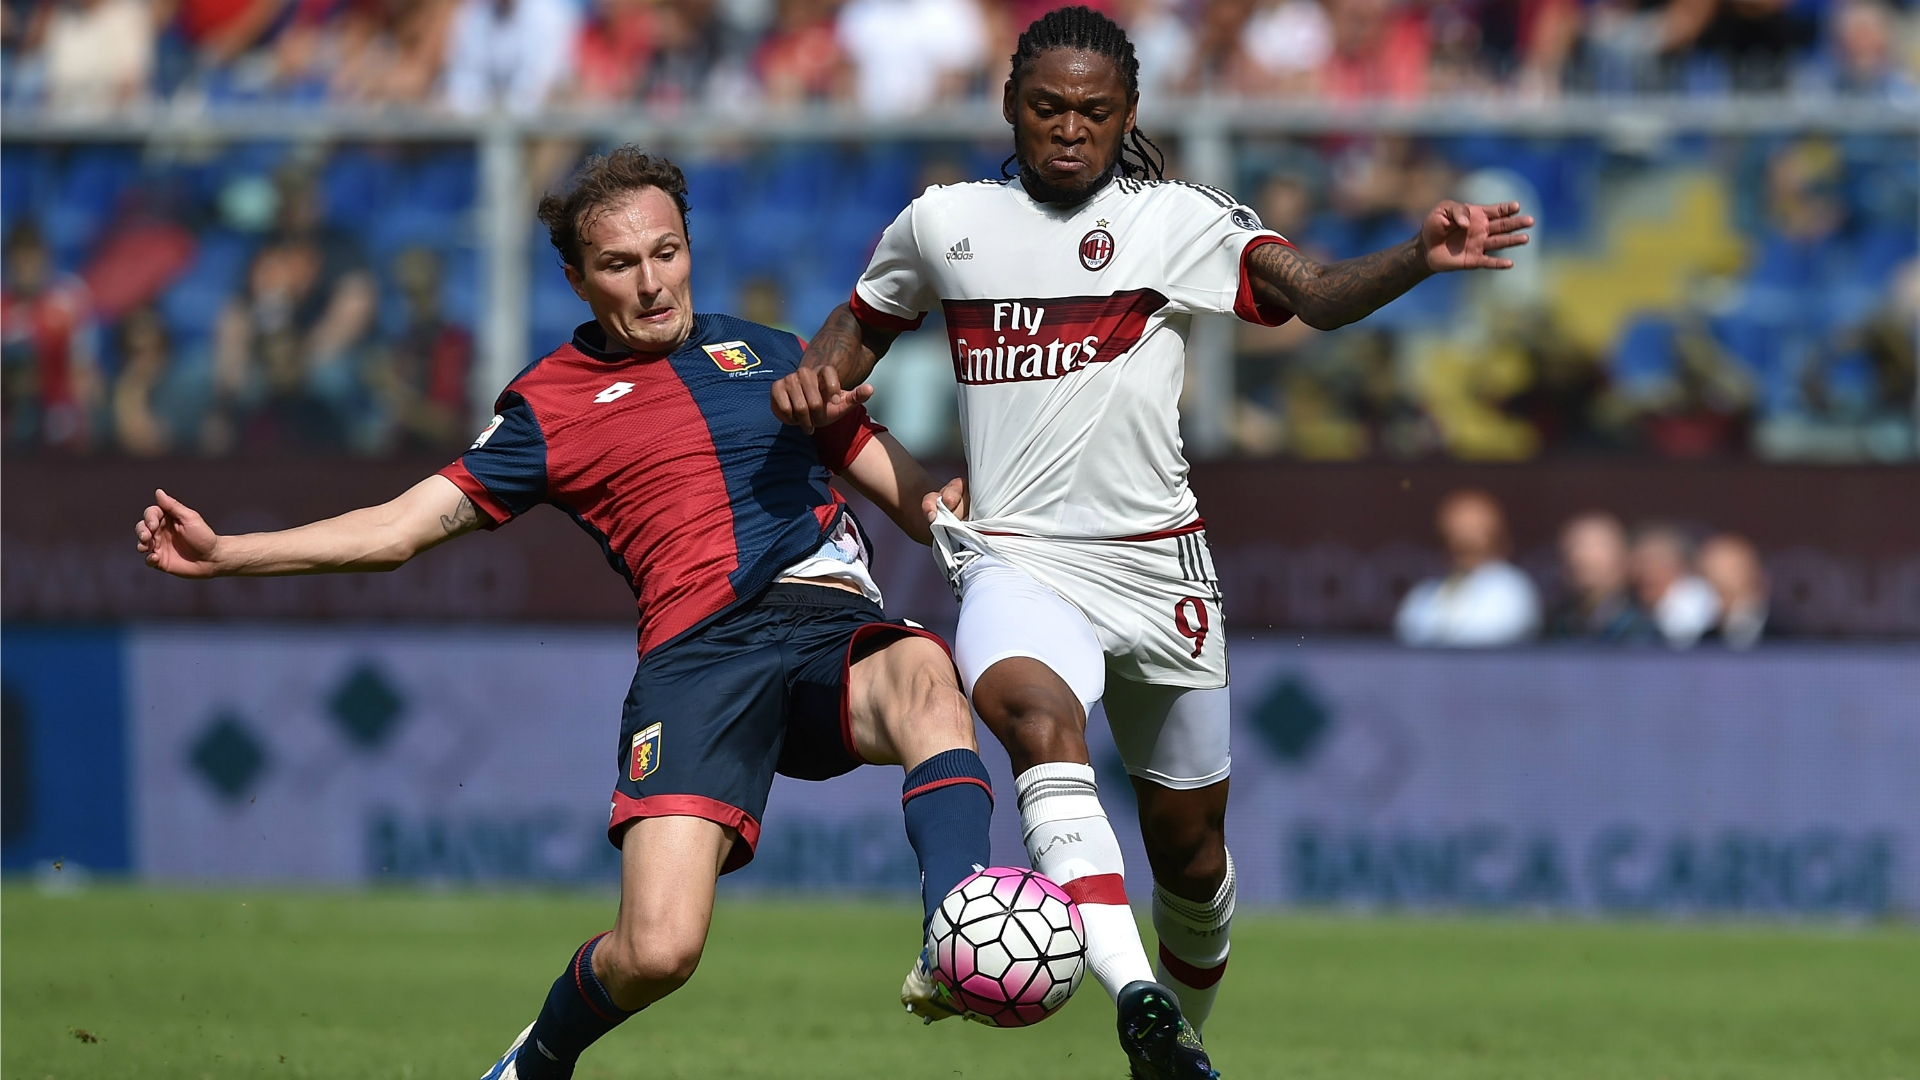 Video: Genoa vs AC Milan